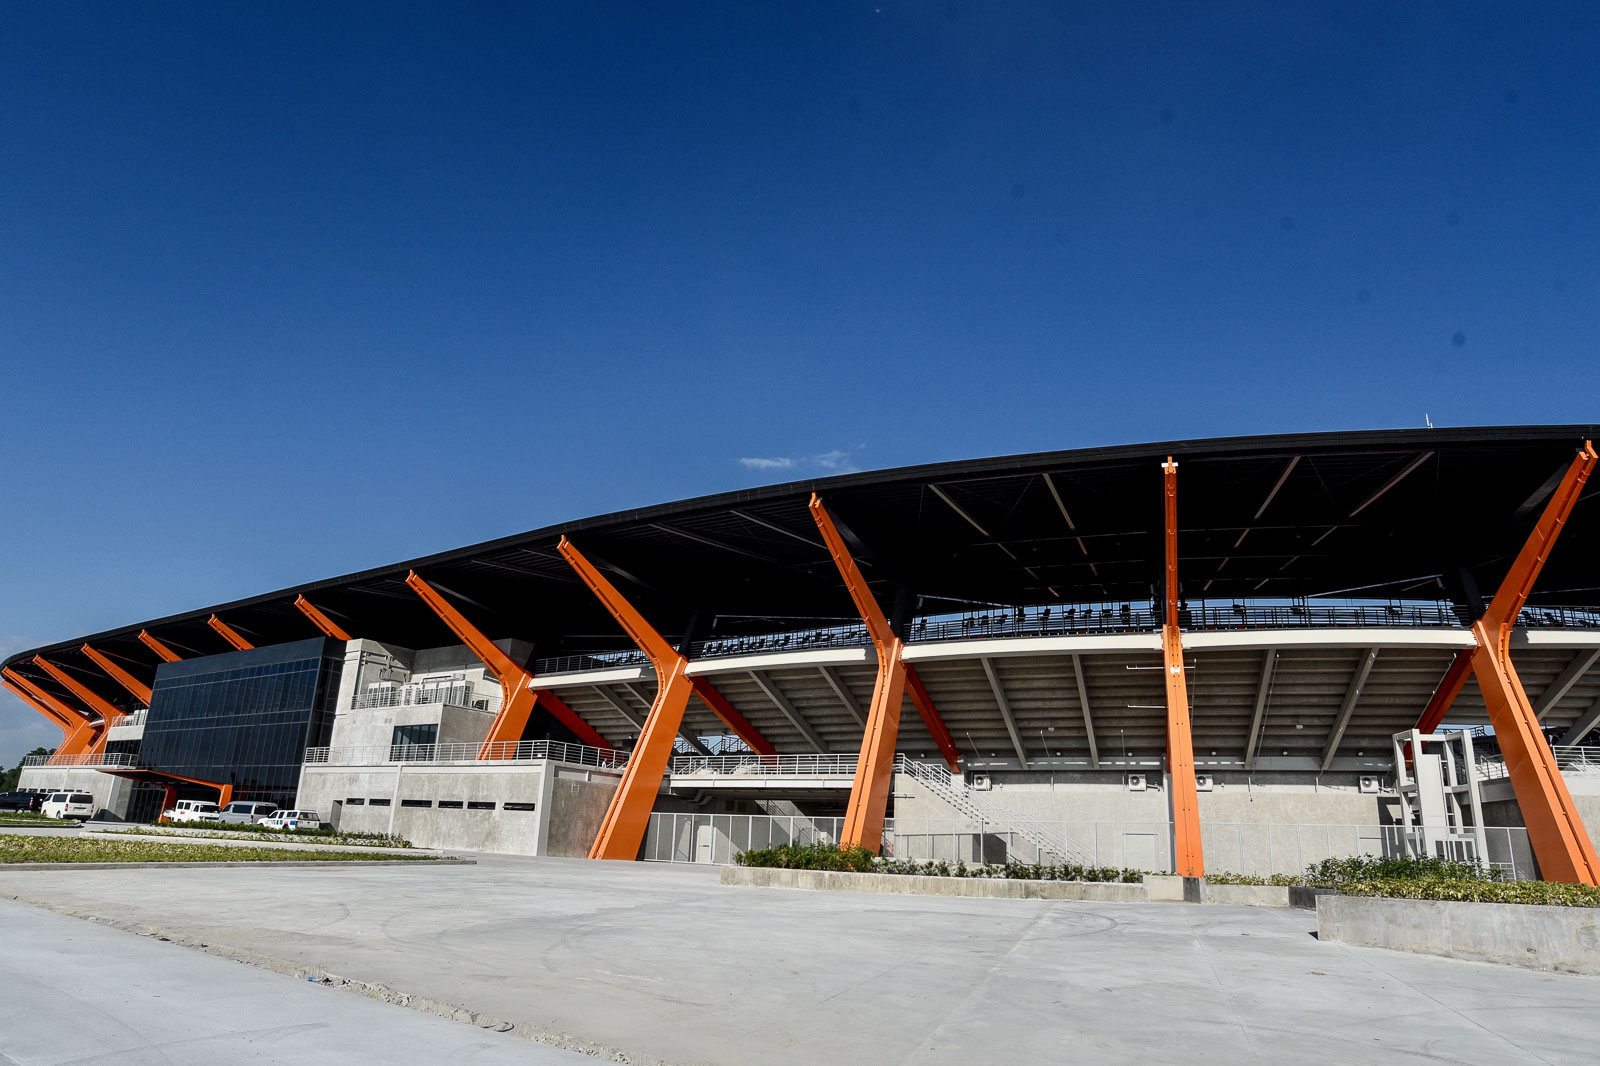 PINATUBO-INSPIRED. The design of the athletics stadium is inspired by the crater of Mt Pinatubo, the contours of the Sierra Madre mountain ranges, and the classic Filipino parol or Christmas lantern. Photo by Angie de Silva/Rappler